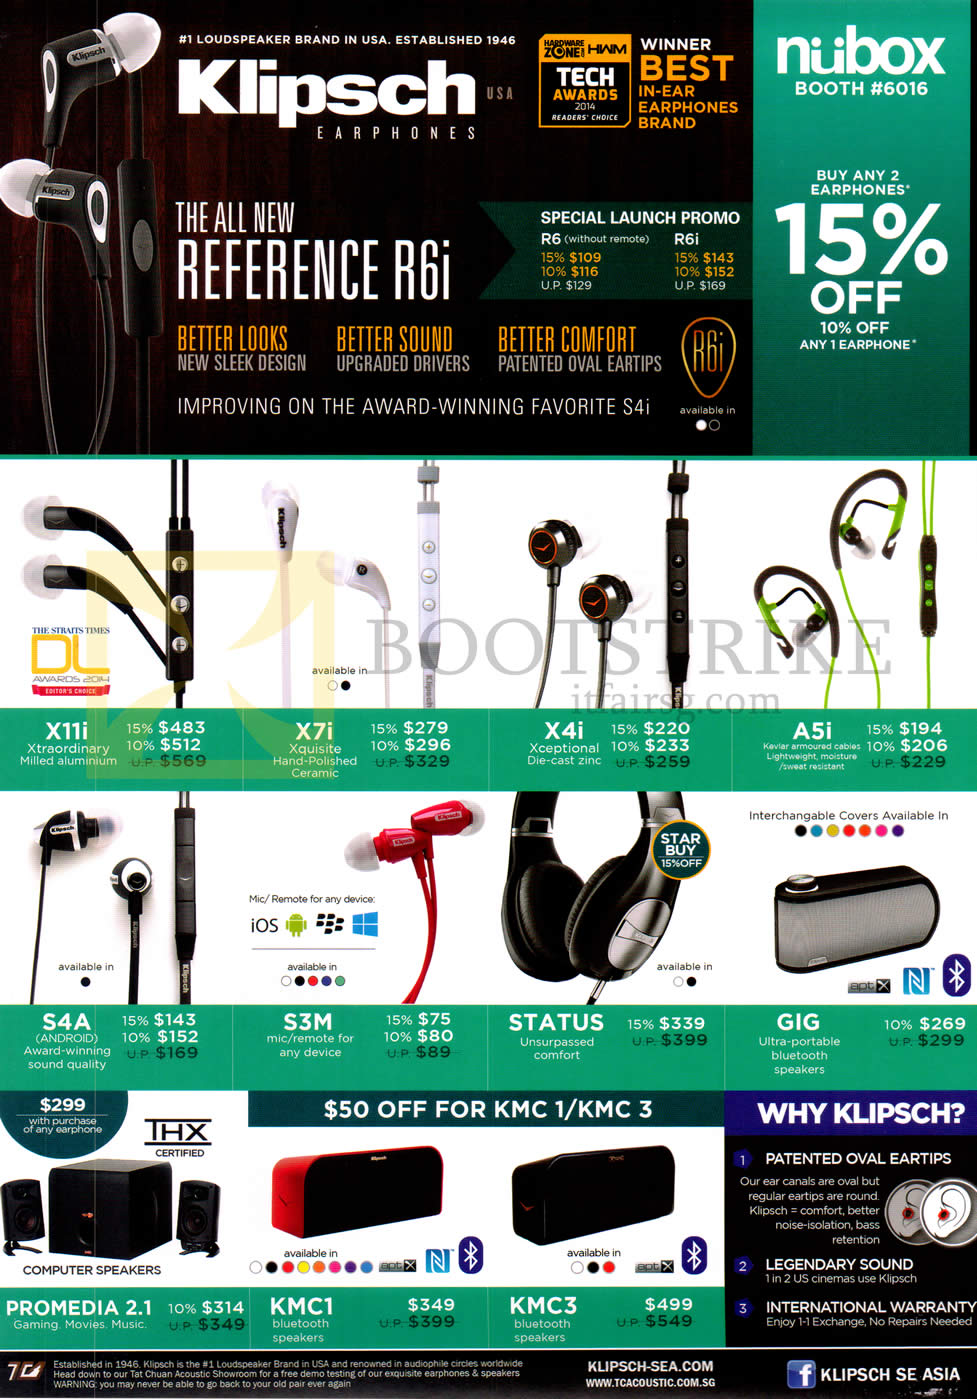 PC SHOW 2014 price list image brochure of Nubox Klipsch Headphones, Headsets, X11i, X7i, X4i, A5i, S4A, S3M, Status, GIG, Promedia 2.1 Speakers, KMC1, KMC3